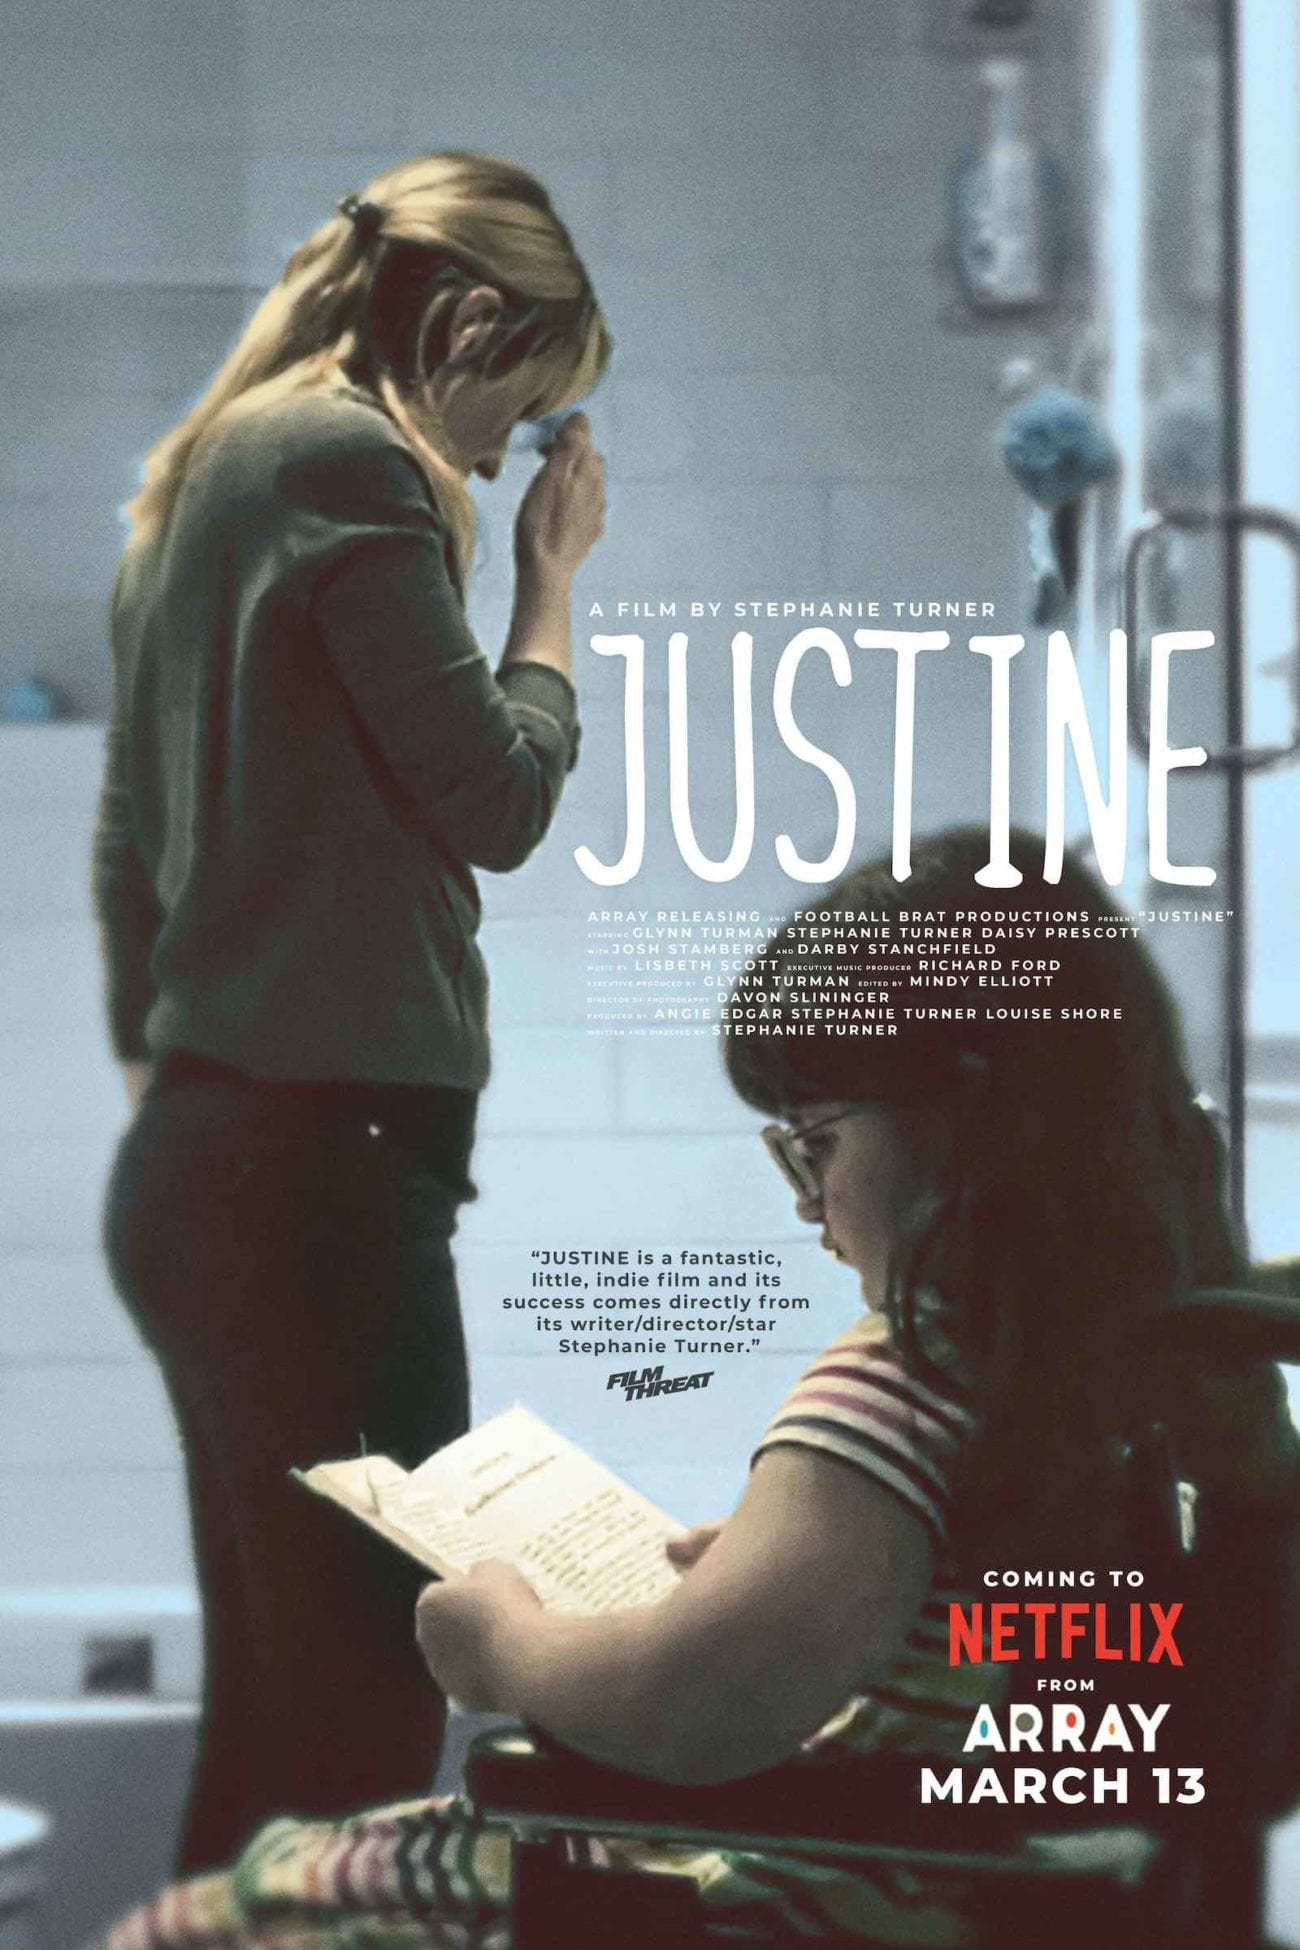 We were delighted to sit down with Stephanie Turner and talk cinema, creativity, and life. Here's what we know about Netflix's 'Justine'.